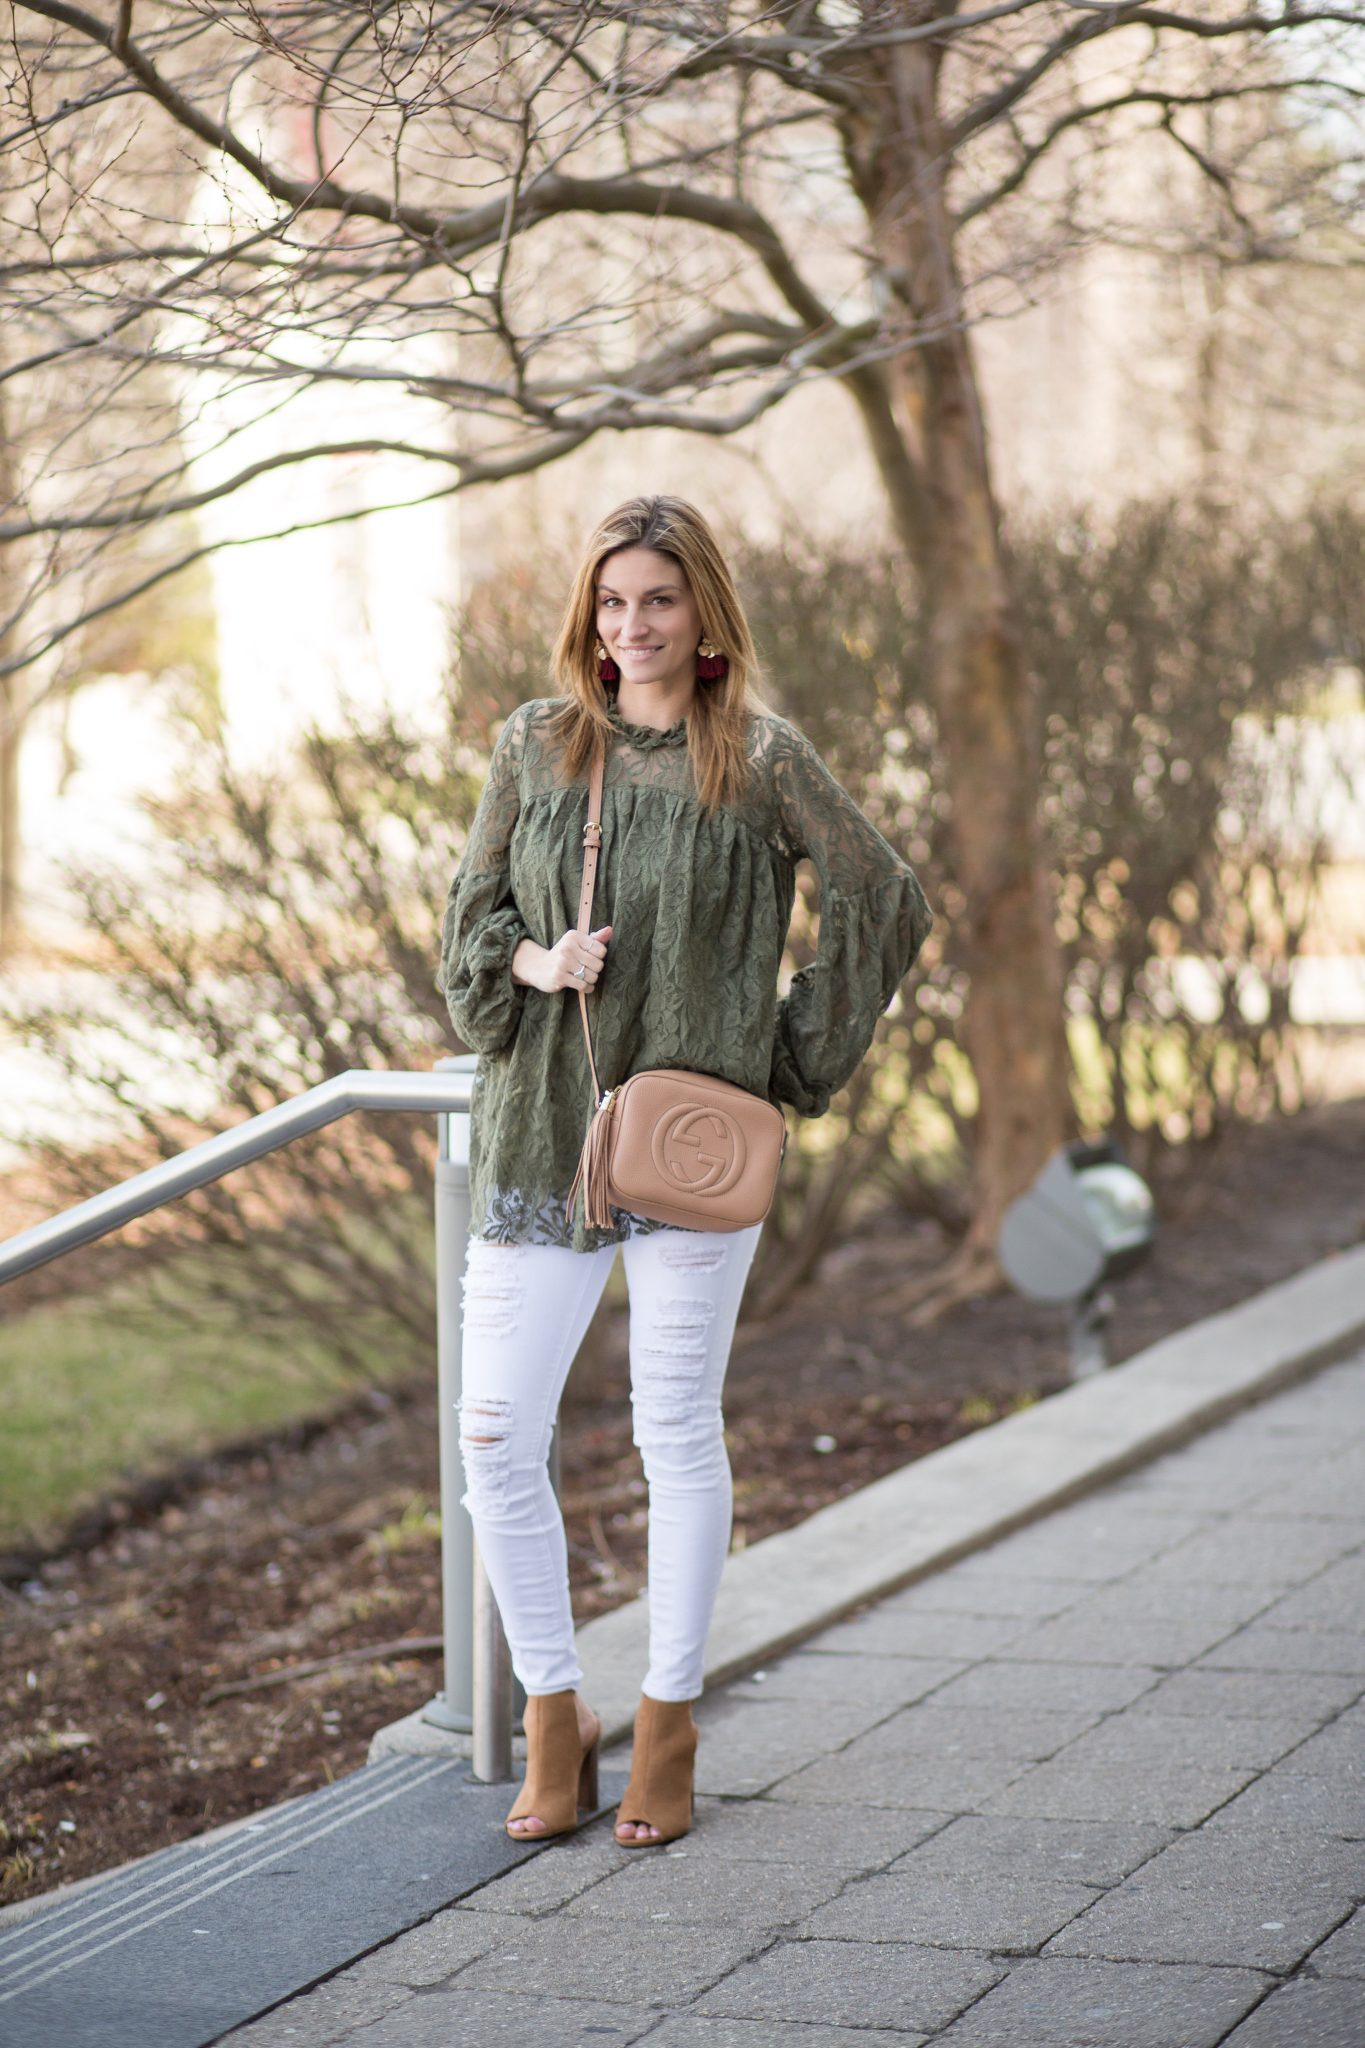 Chicwish Leaf Power Lace Dolly Top in Olive, white jeans from jean machine, nude peep toe booties from Le Chateau, Gucci nude soho disco bag, tassel earrings from H&M